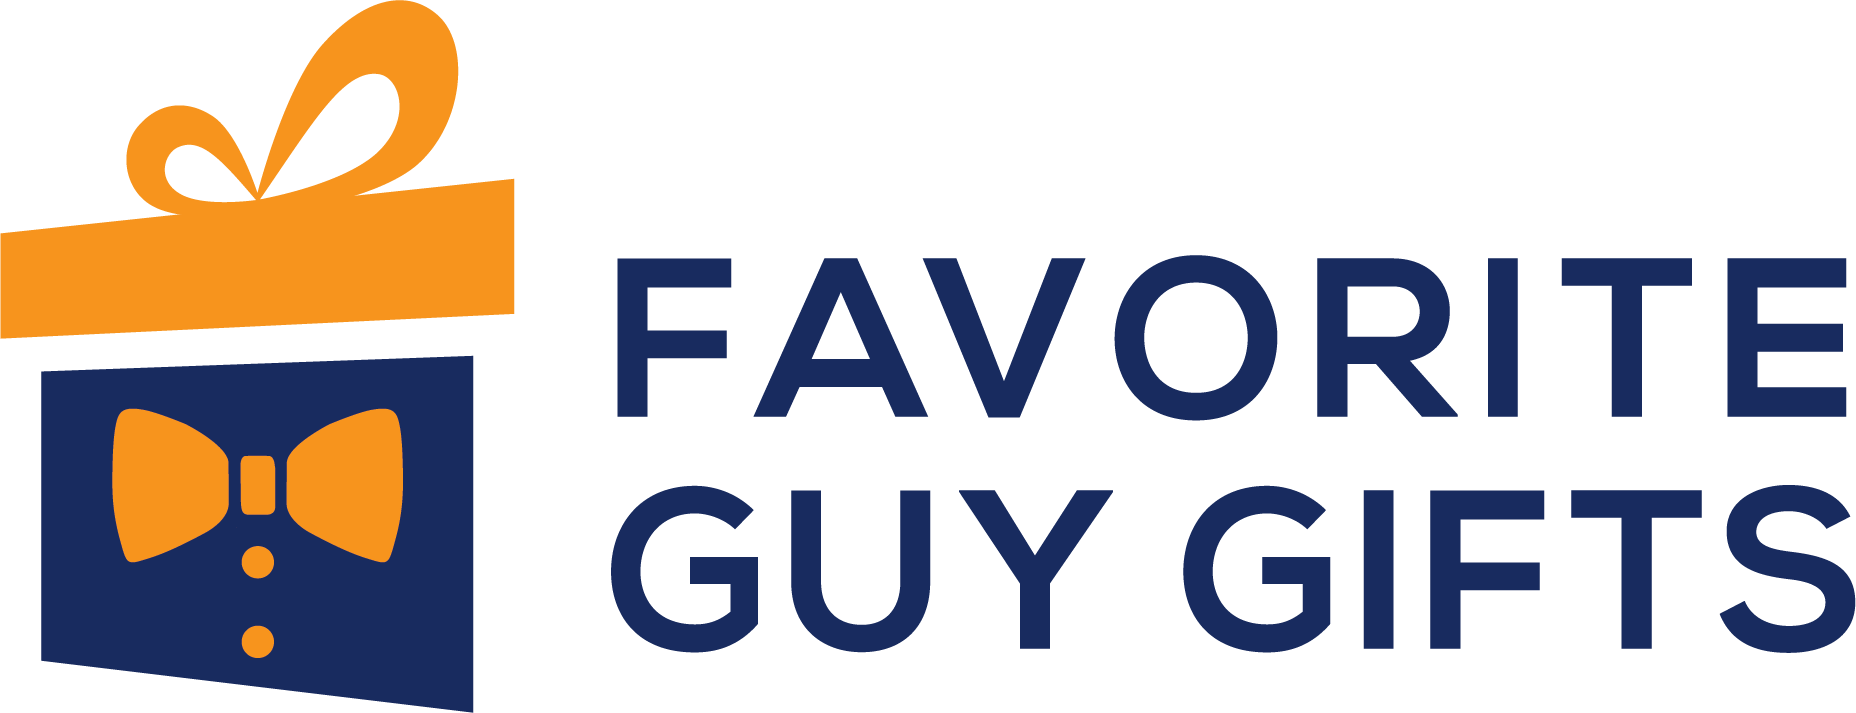 Favorite Guy Gifts Full Color Horizontal Logo Clear Background - Find Gifts For Men